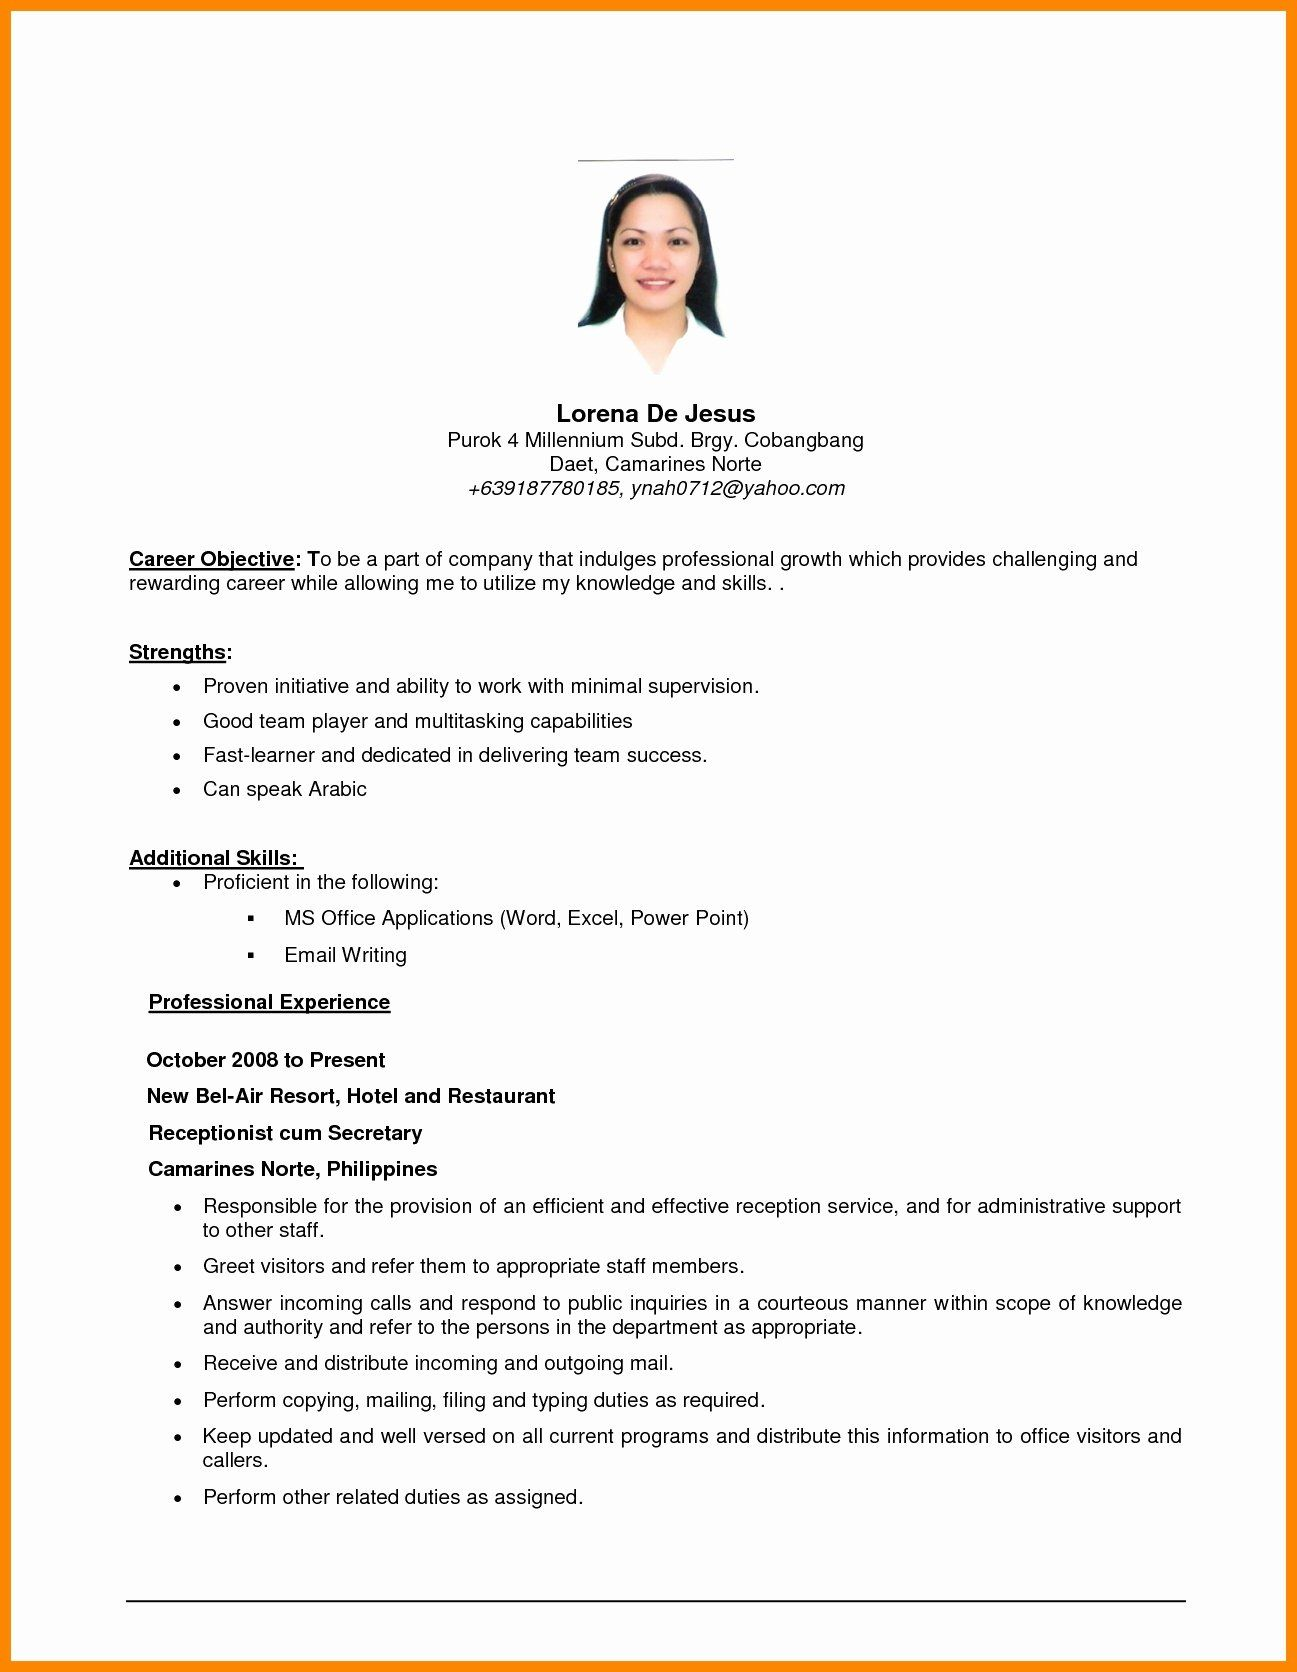 generic objective for resume inspirational general examples in job career purpose of on Resume Purpose Of Objective On Resume